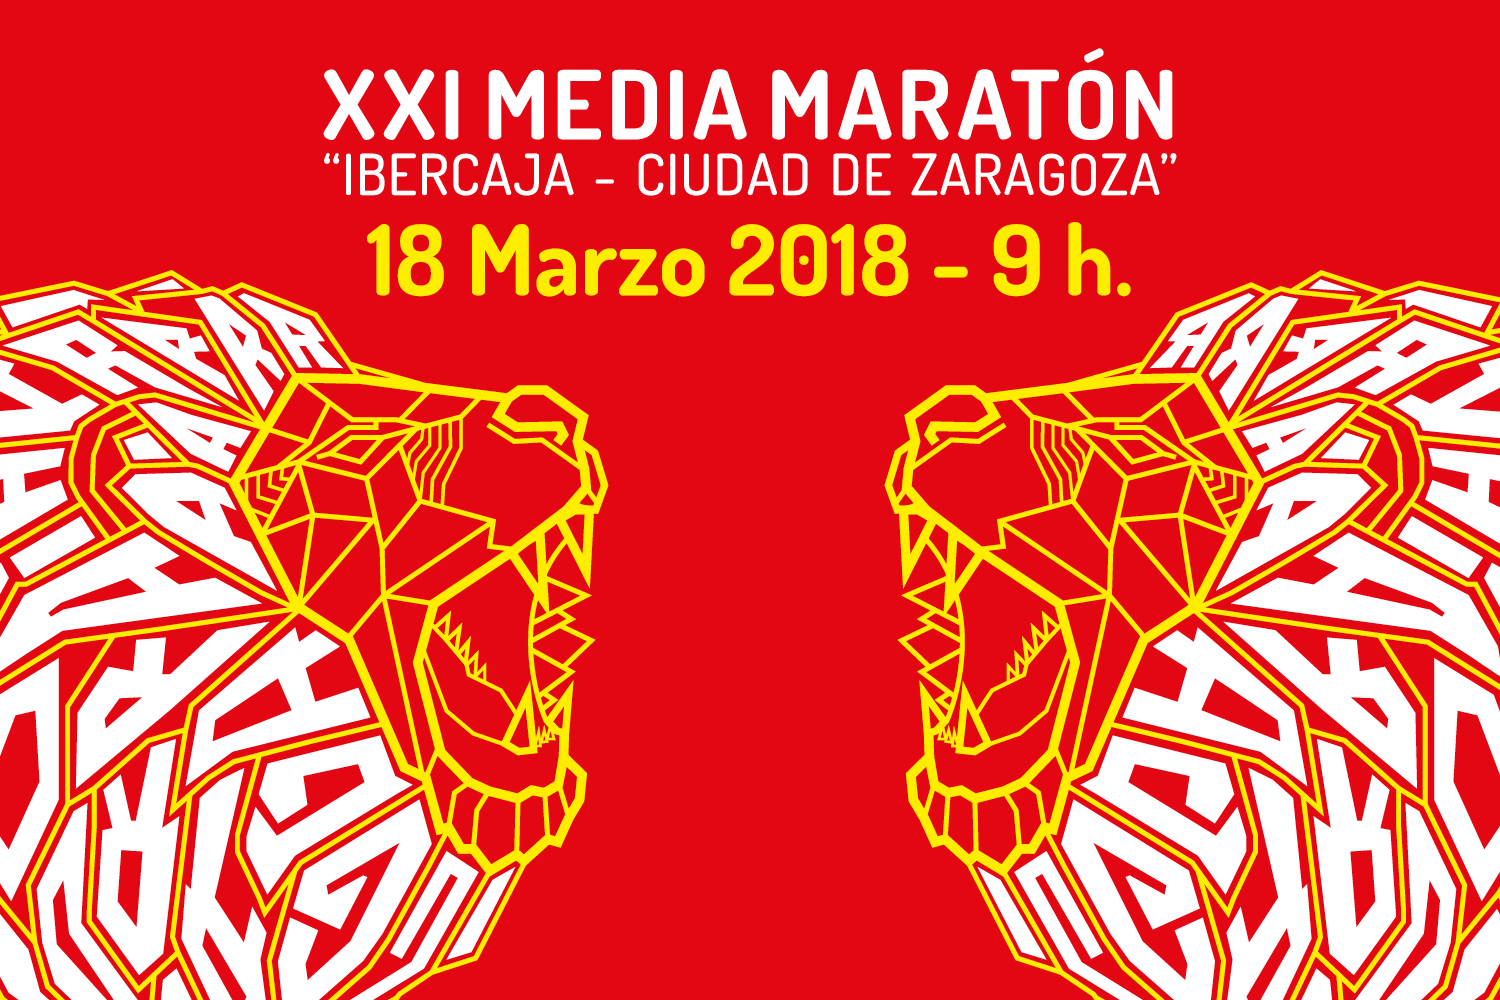 Anto Moreno - Full Graphic Services  Media Maratón de Zaragoza 2018